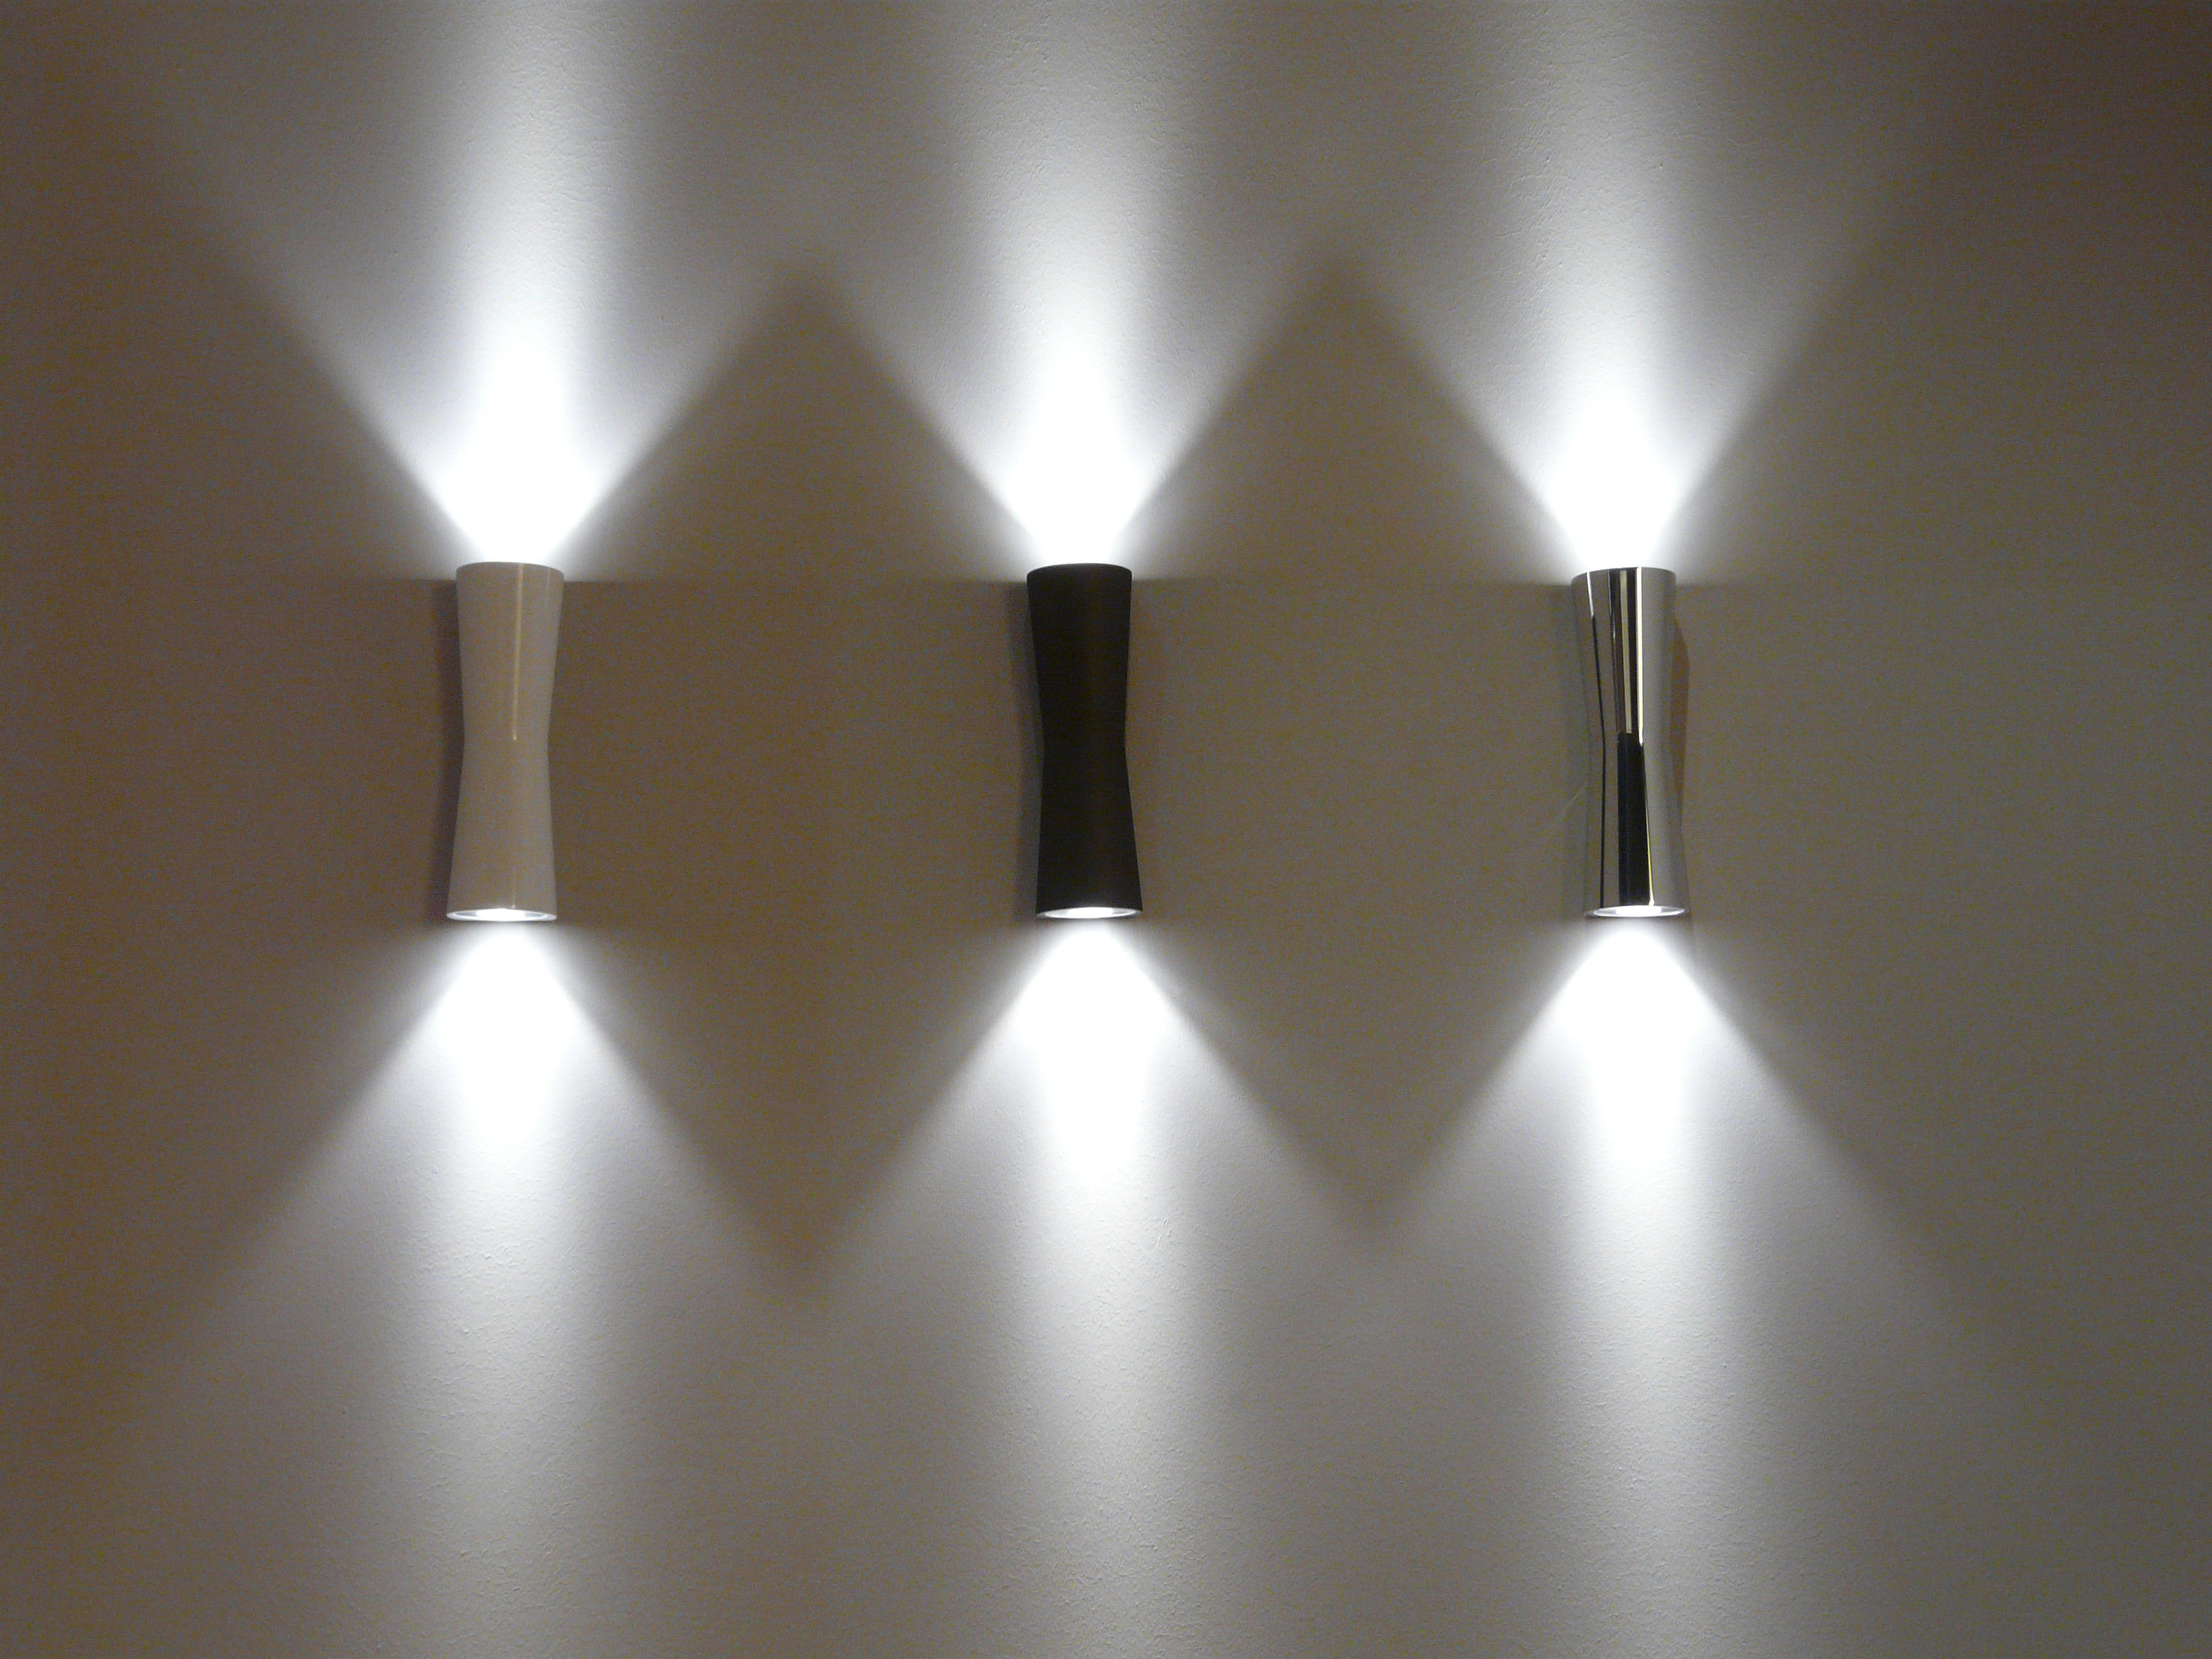 British Made Wall Lights : Clessidra 40? Wall light - LED - Indoor Chrome by Flos